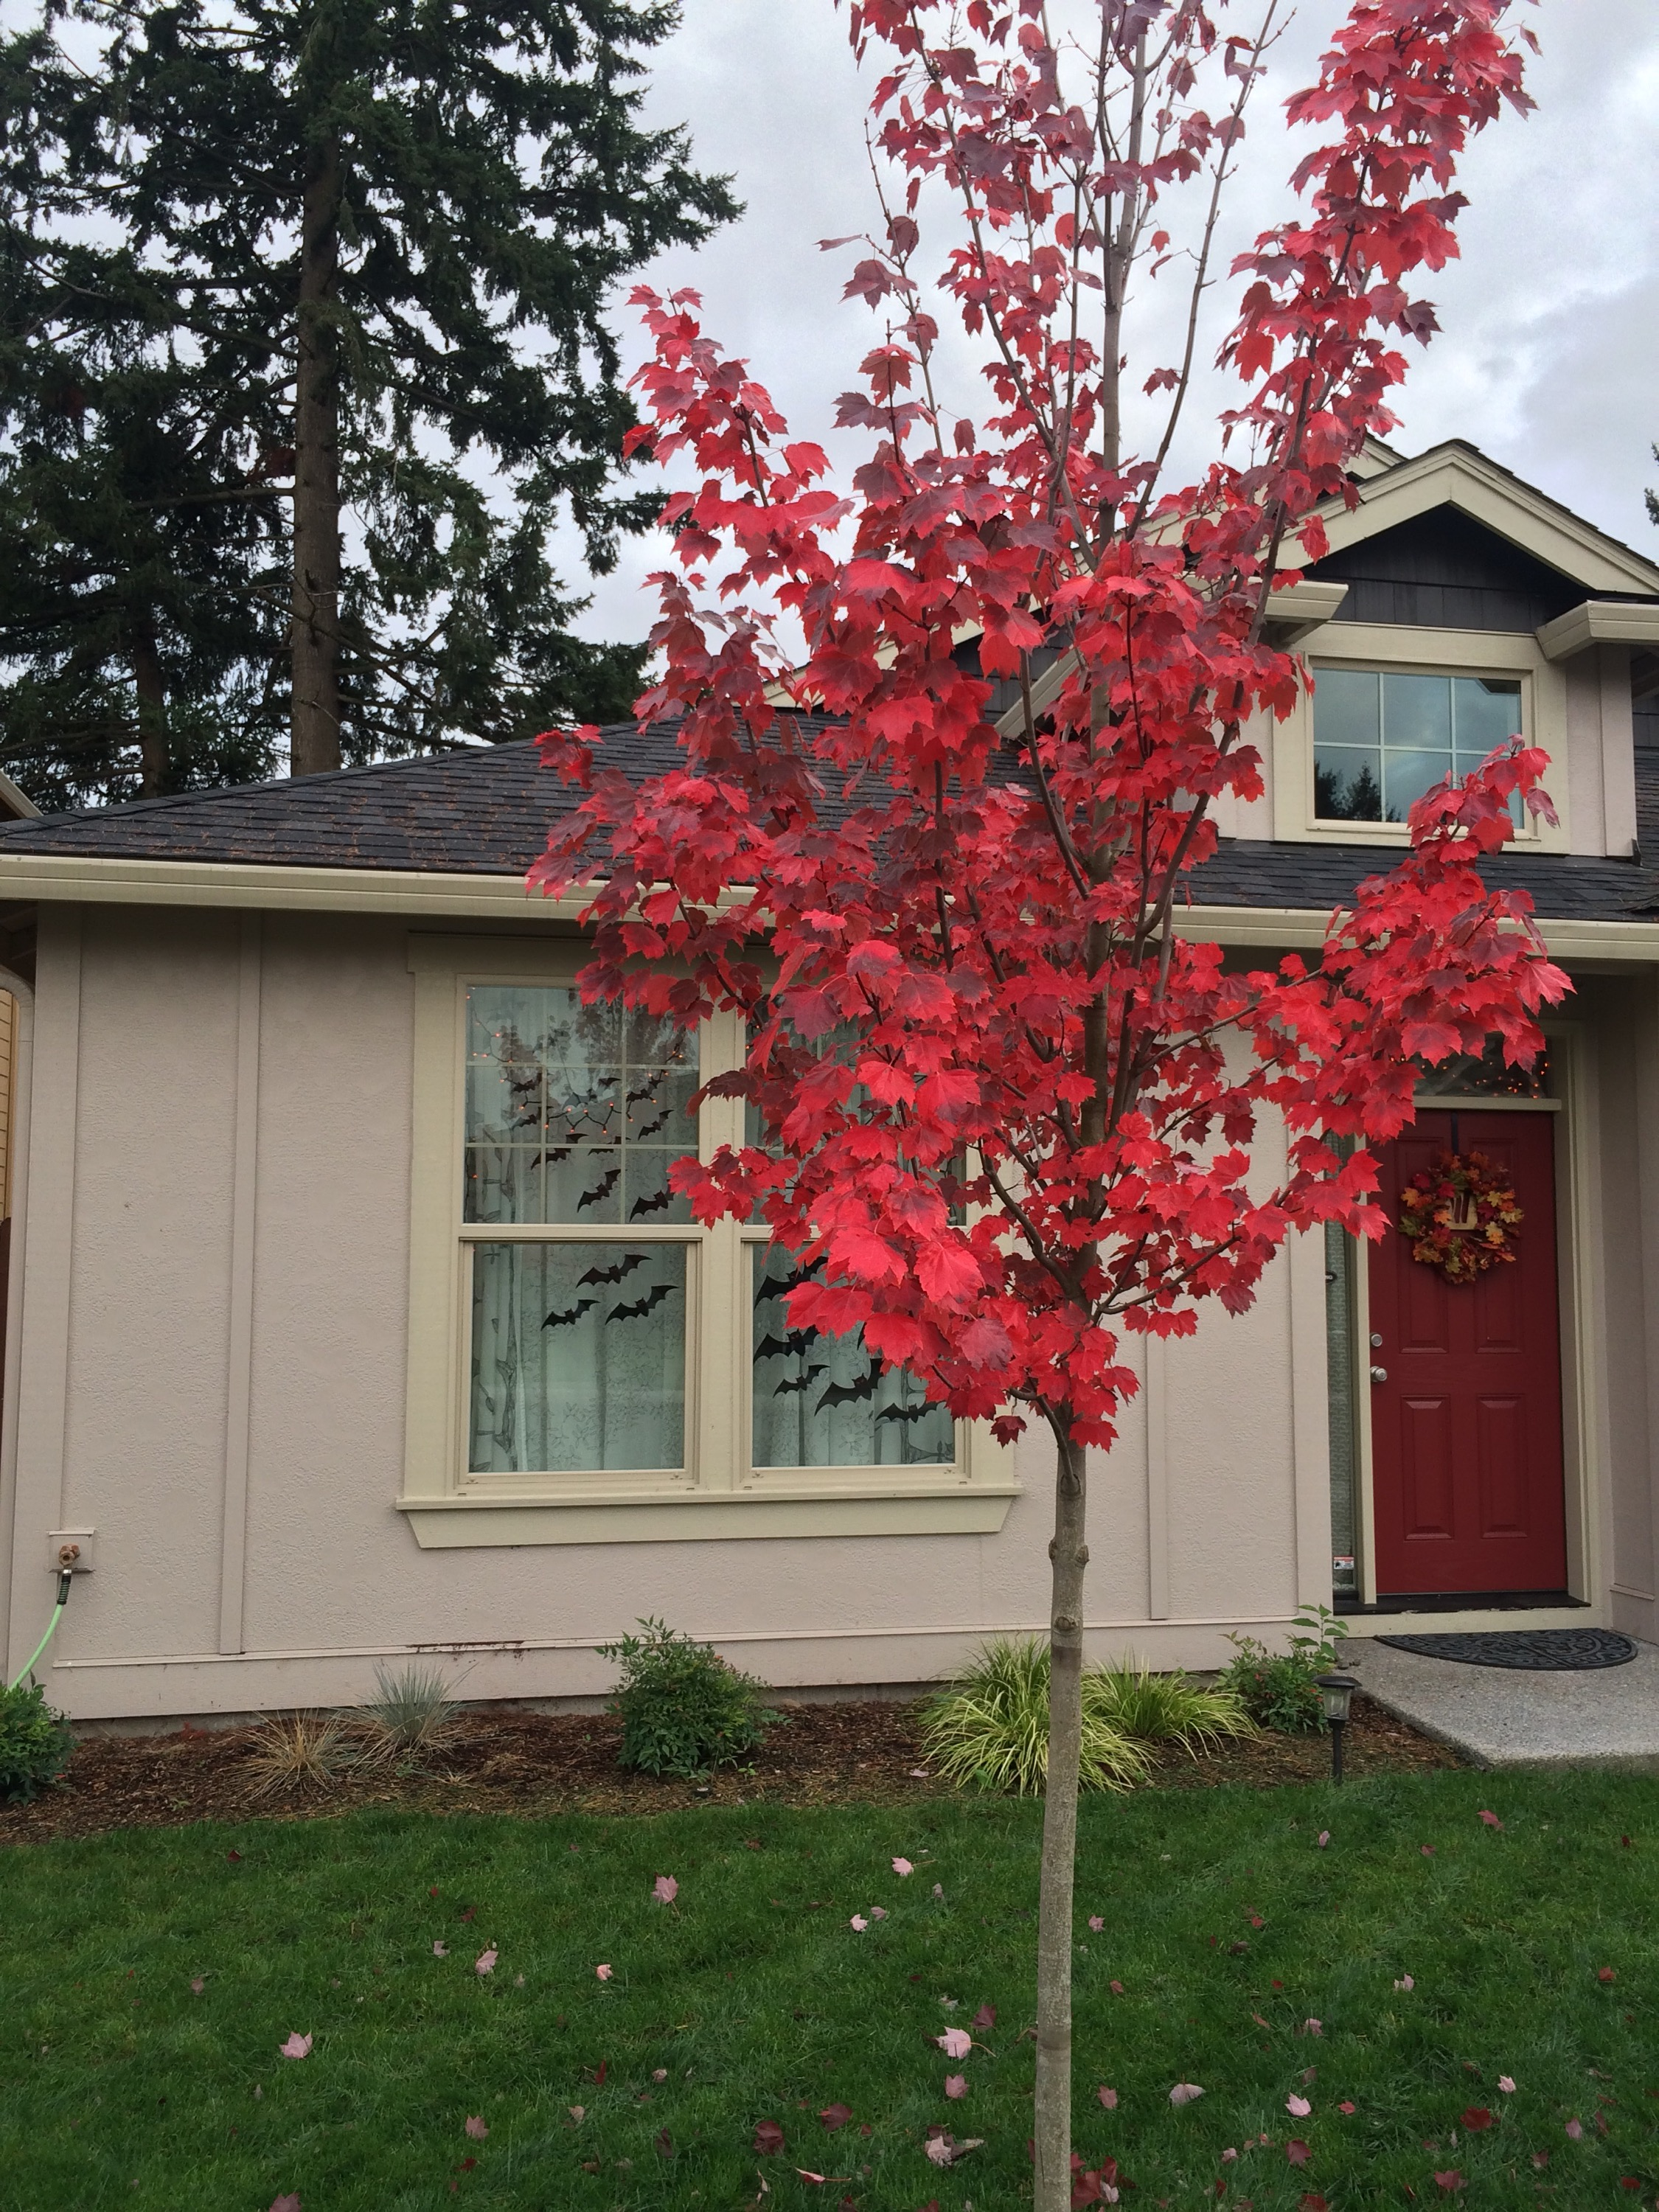 A rougly 10 foot tall maple sapling has turned bright red and started to lose its leaves. It stands in the front yard in front of a light tan house with a red door. Halloween bat decorations silhouette the front window.